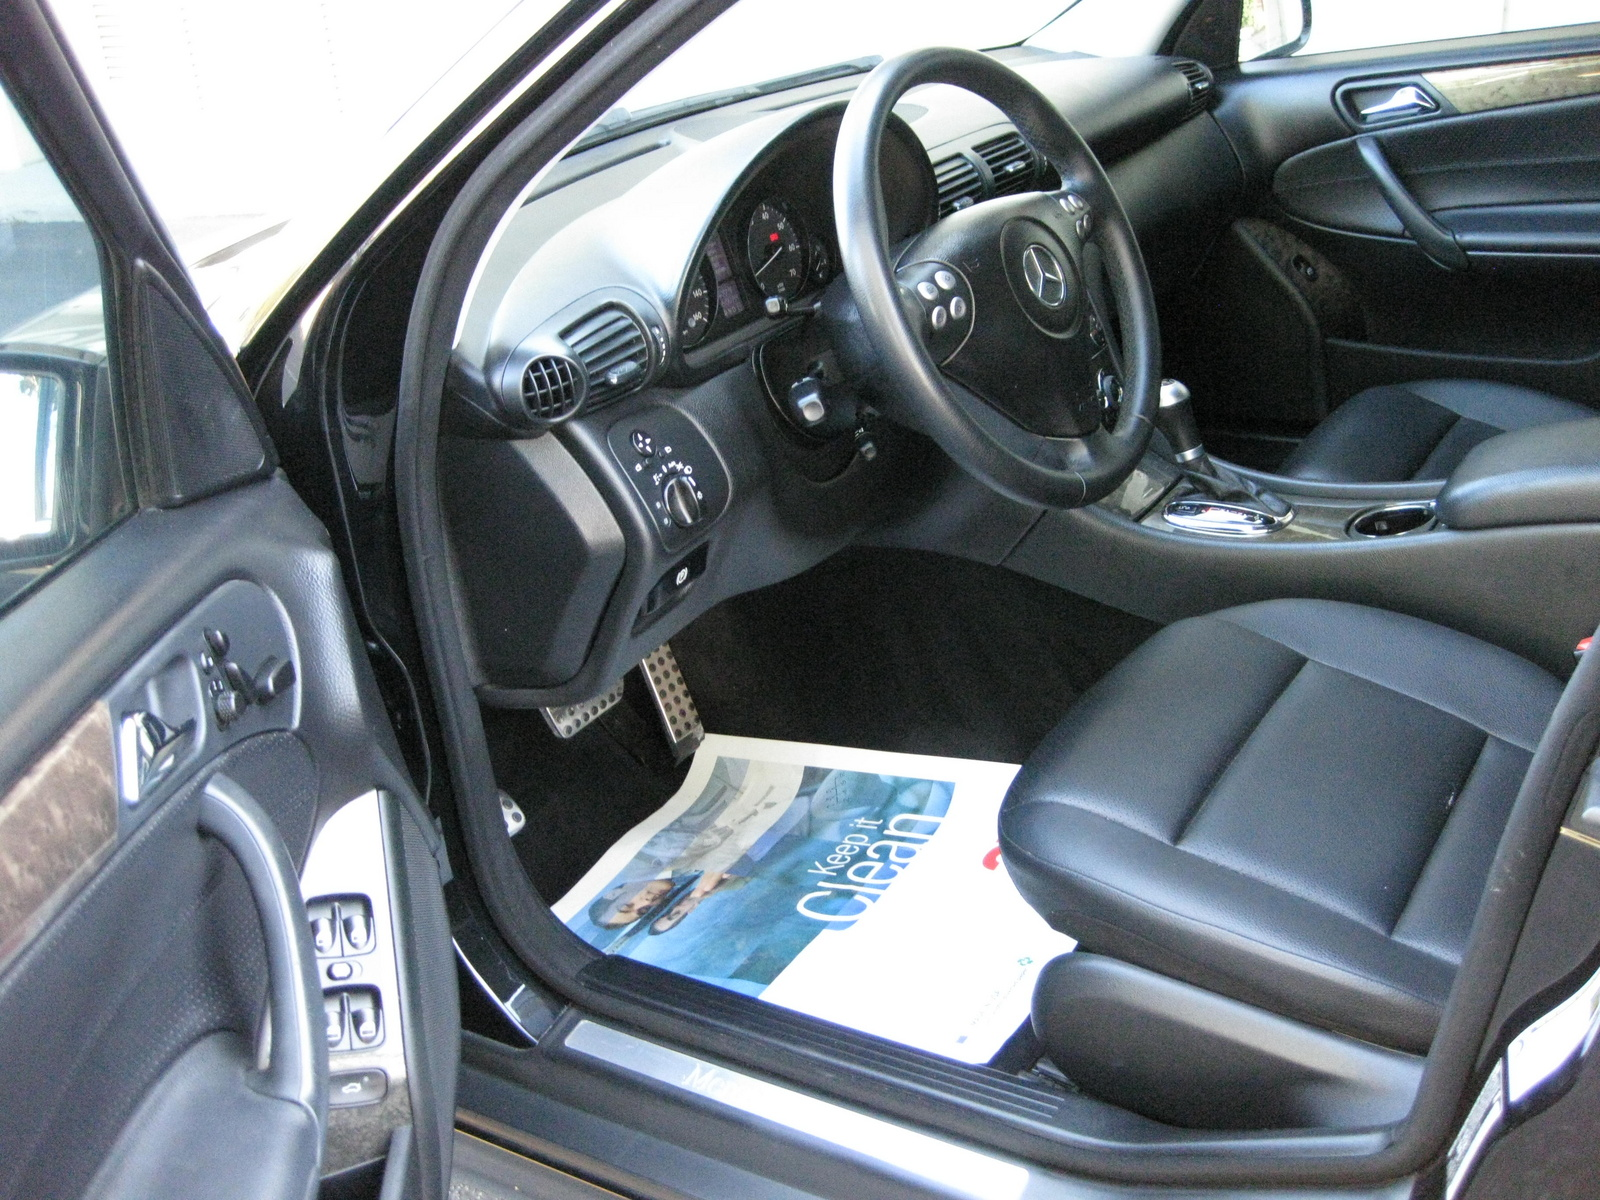 2007 c230 interior pictures to pin on pinterest pinsdaddy for 2006 mercedes benz c230 problems